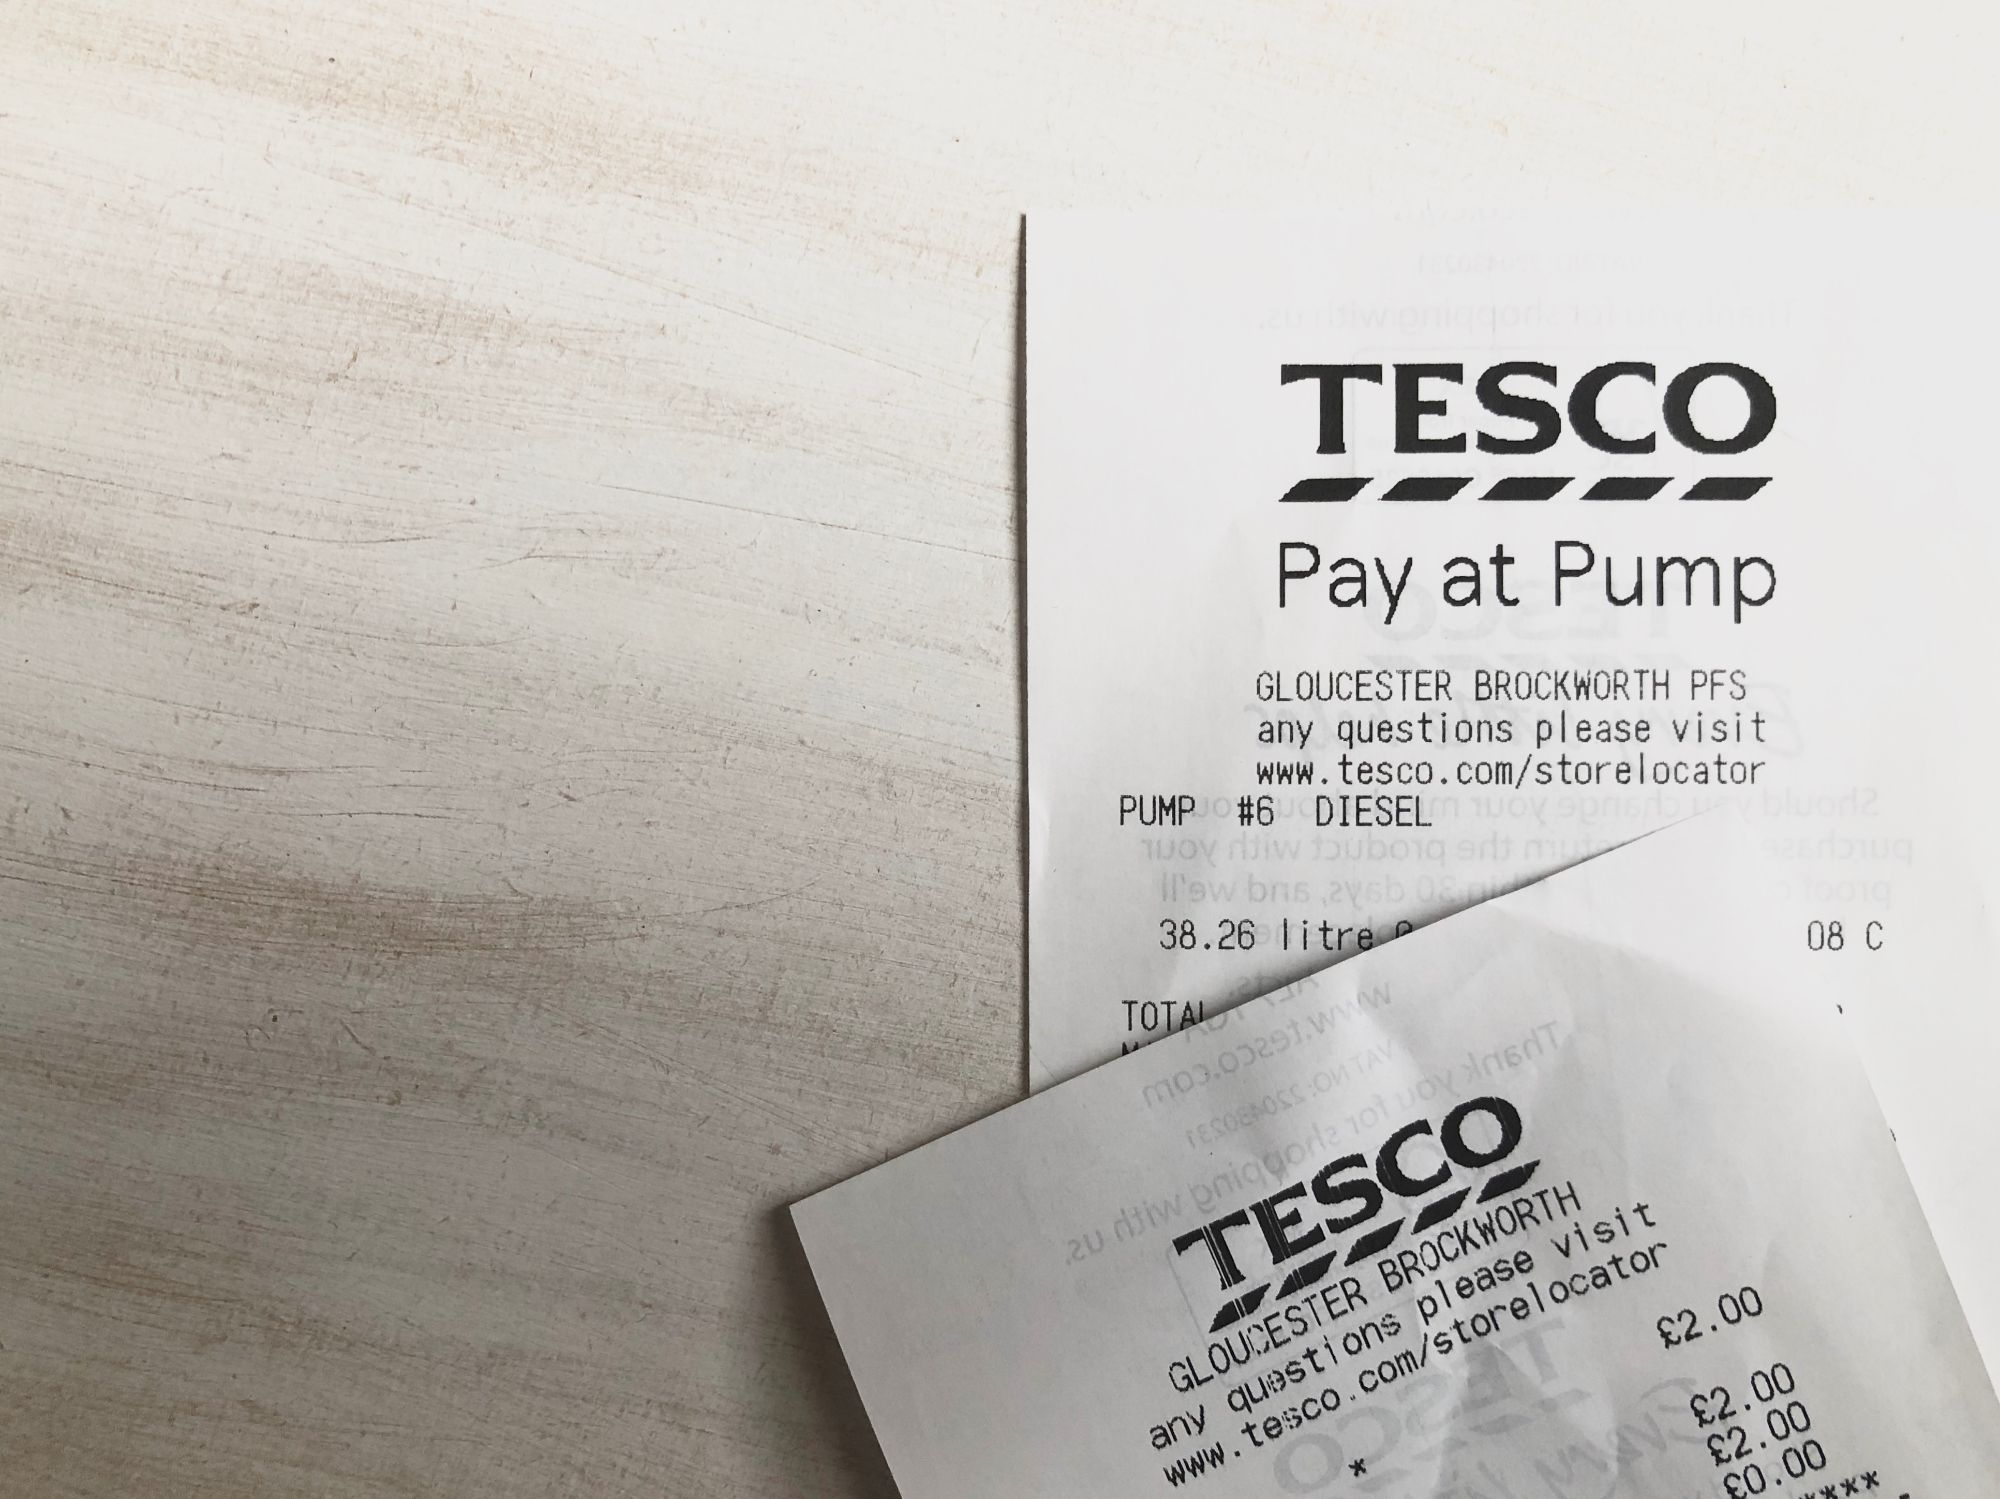 Free stock images money bloggers blog photos Tesco receipts pay at pump diesel supermarket